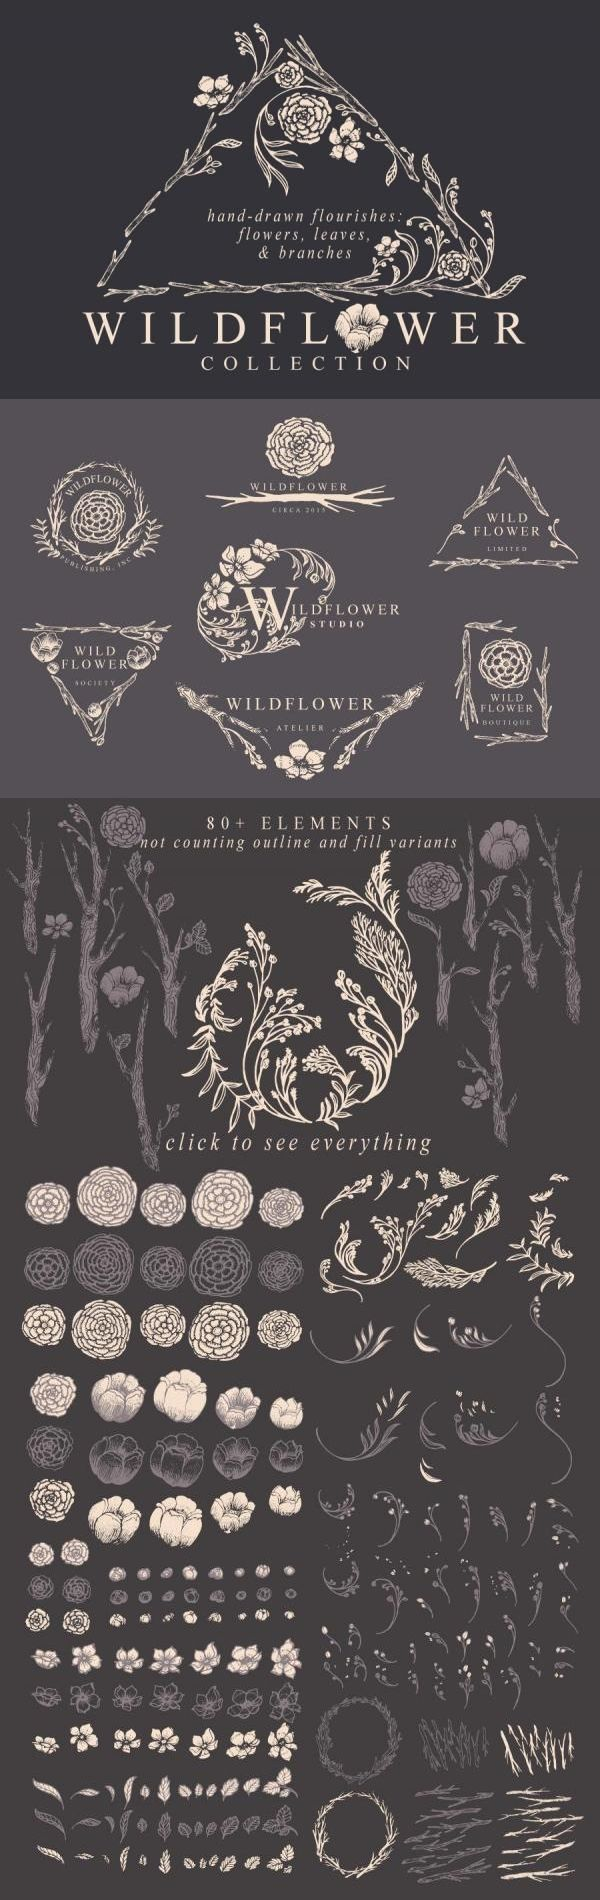 Hand-drawn floral flourishes: flowers, leaves, and branches. Wildflowers in a fairytale forest. Romantic lineart with fine detail and graceful curves, reminiscent of old-fashioned storybook pictures and Art Nouveau period illustrations. Bohemian logo templates included. Perfect for wedding invitations, perfume branding, and garden-themed wallpaper. Check it out on Creative Market!